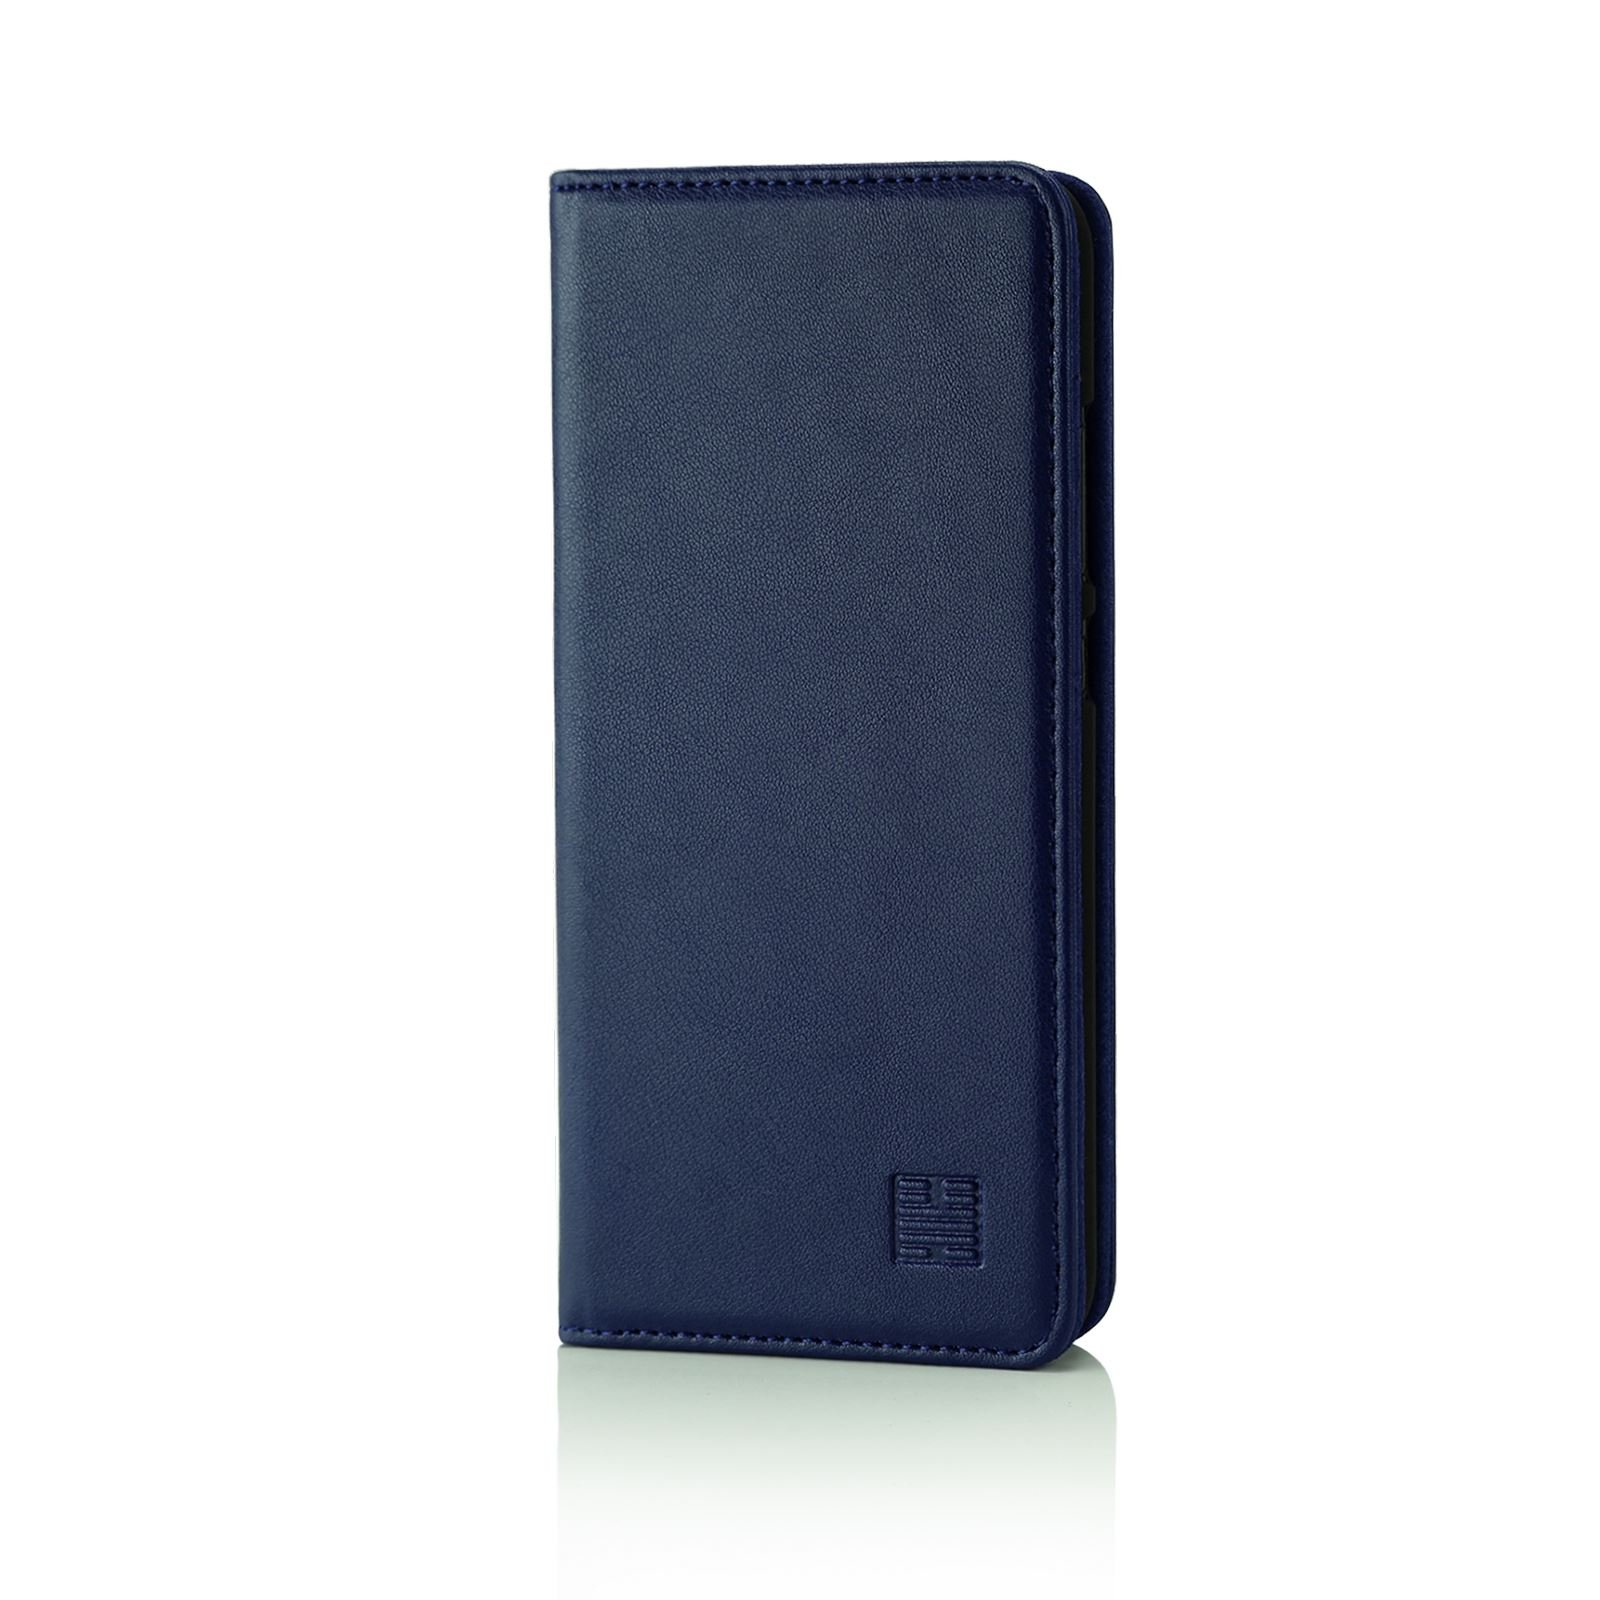 32nd Classic Series - Real Leather Book Wallet Case Cover for Huawei P10, Real Leather Design with Card Slot, Magnetic Closure and Built in Stand - Navy Blue